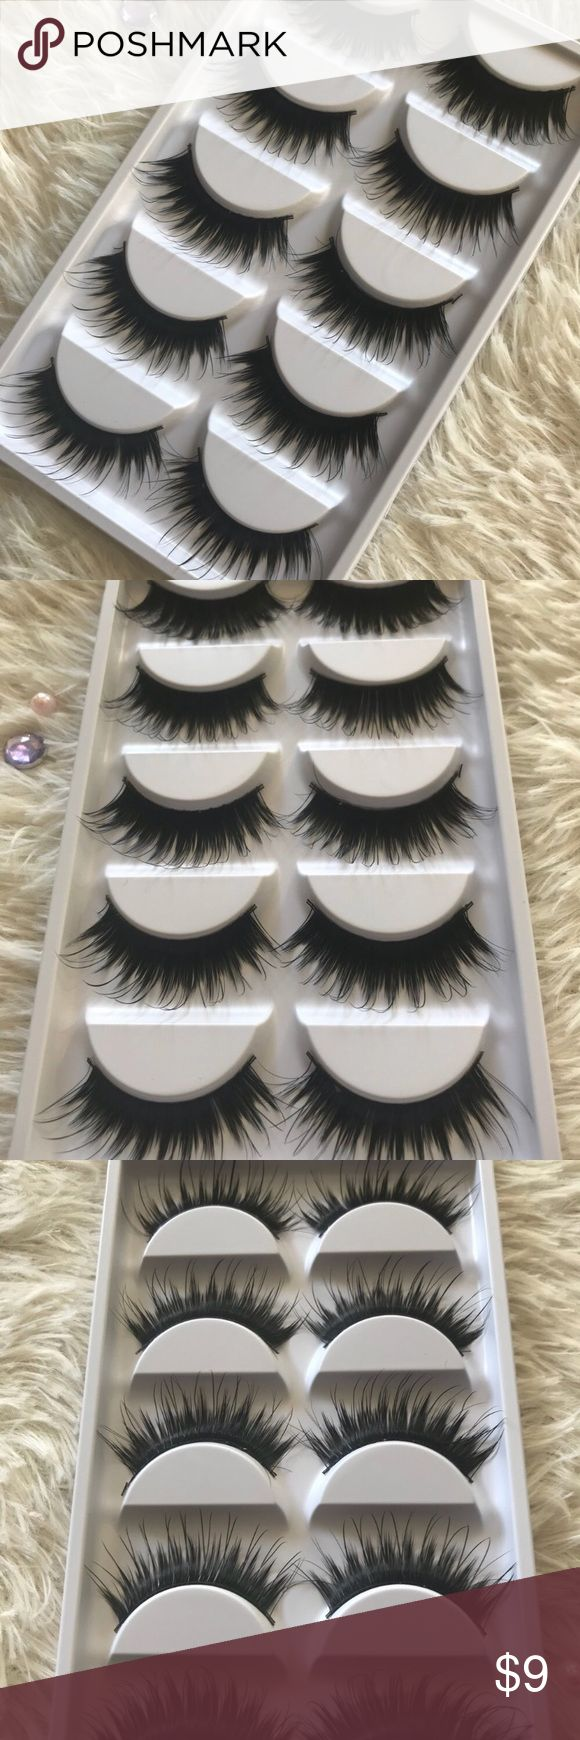 Wispy Eyelashes 5 Pairs +$2 Add on eyelash Applicator  +$3 Add on eyelash glue Please message me if you want to add them.  ✅ Bundle &  Save  # tags Iconic, mink, red cherry eyelashes, house of lashes, doll, kawaii, case, full, natural,  Koko, Ardell, wispies, Demi , makeup, Iconic, mink, red cherry eyelashes, house of lashes, doll, kawaii, case, full, natural,  Koko, Ardell, wispies, Demi , makeup, mascara, eyelash applicator, Mykonos Mink , Lashes , wispy ,eyelash case, mink lashes  Ship…